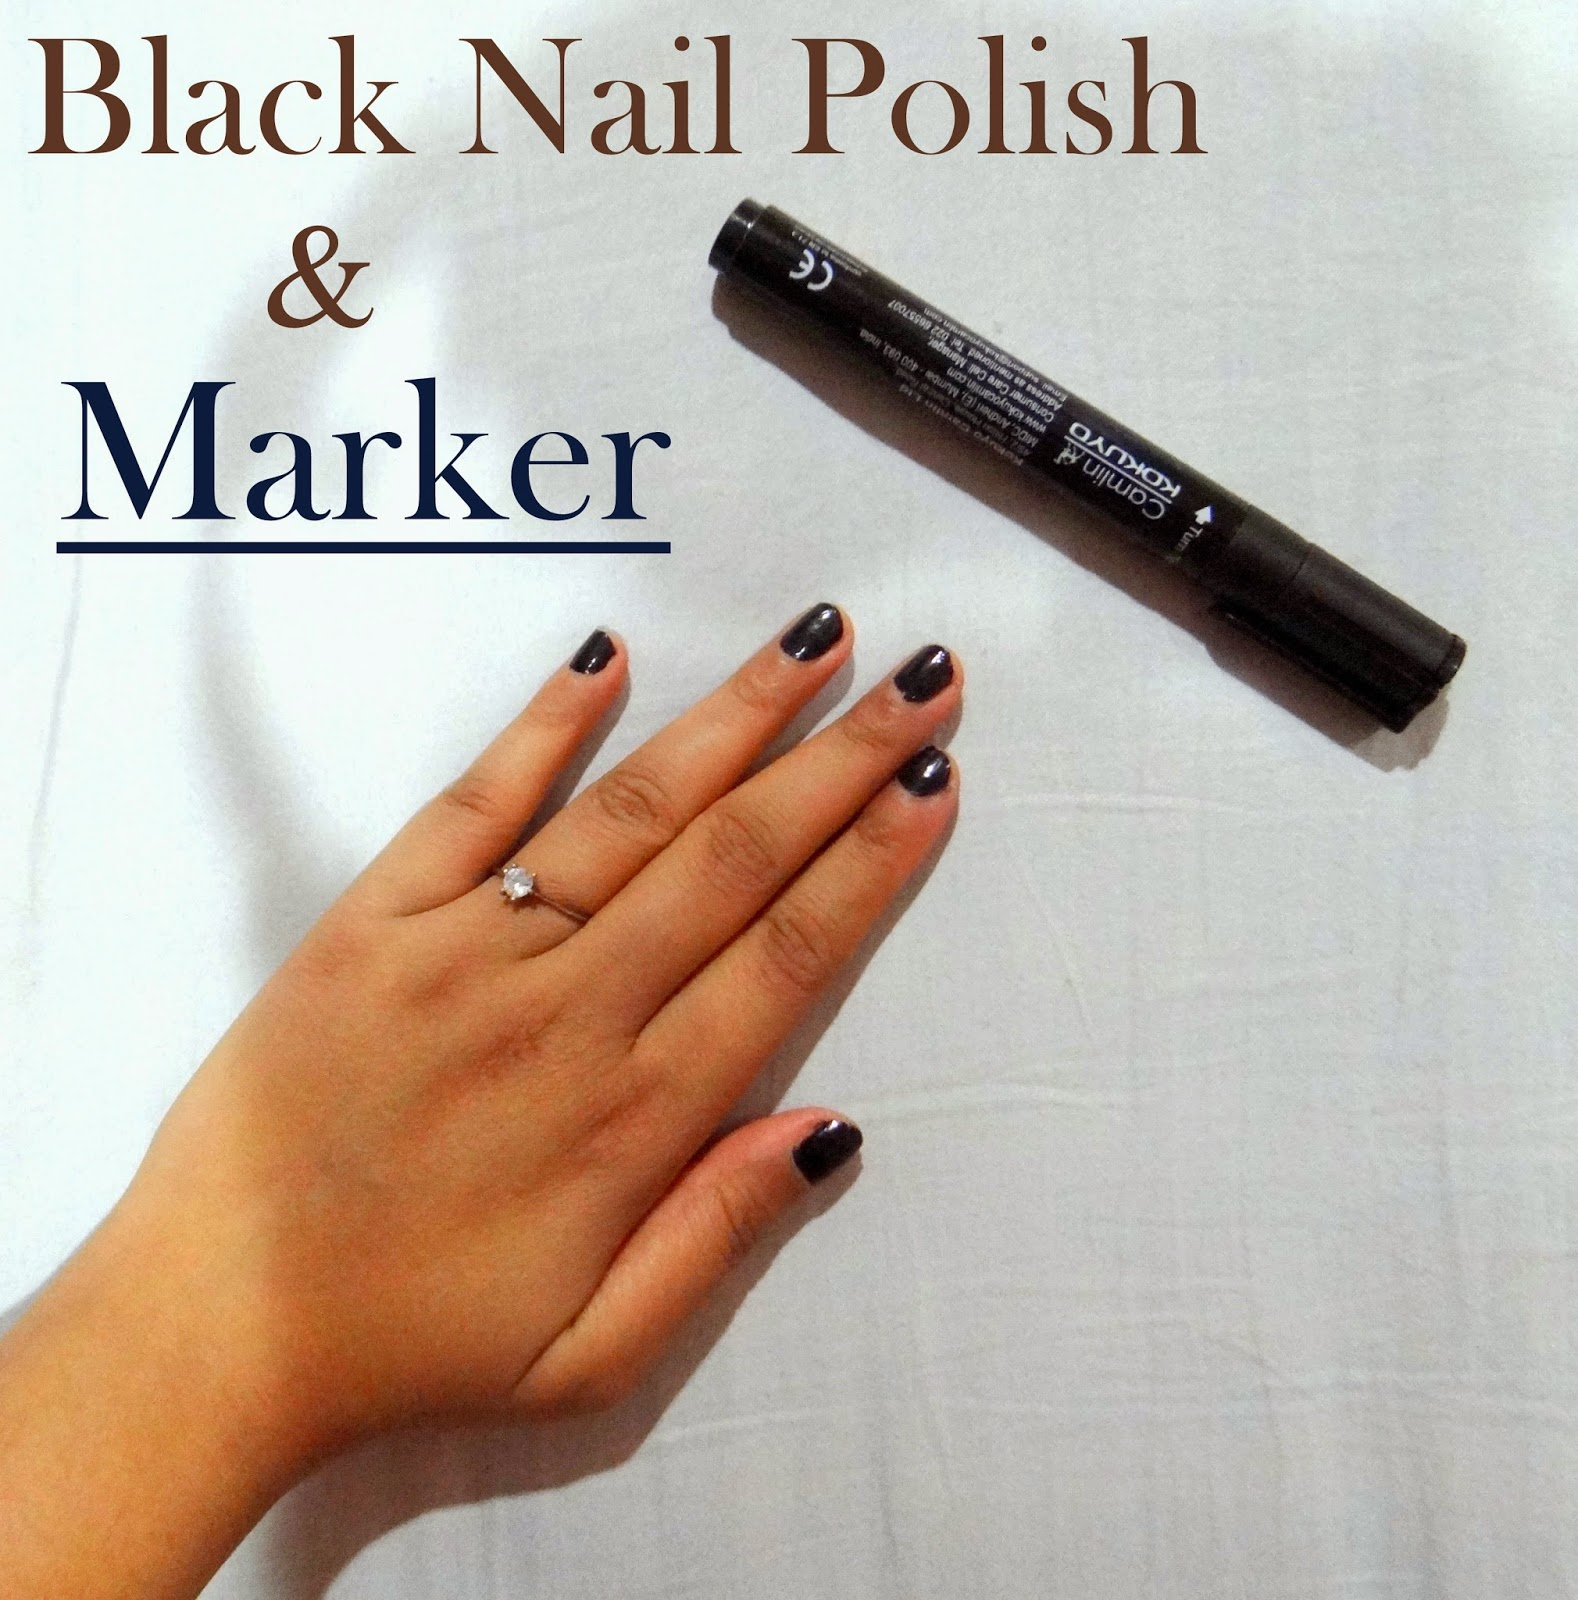 Black Nail Polish and Marker - The Pretty City Girl: Indian Travel ...